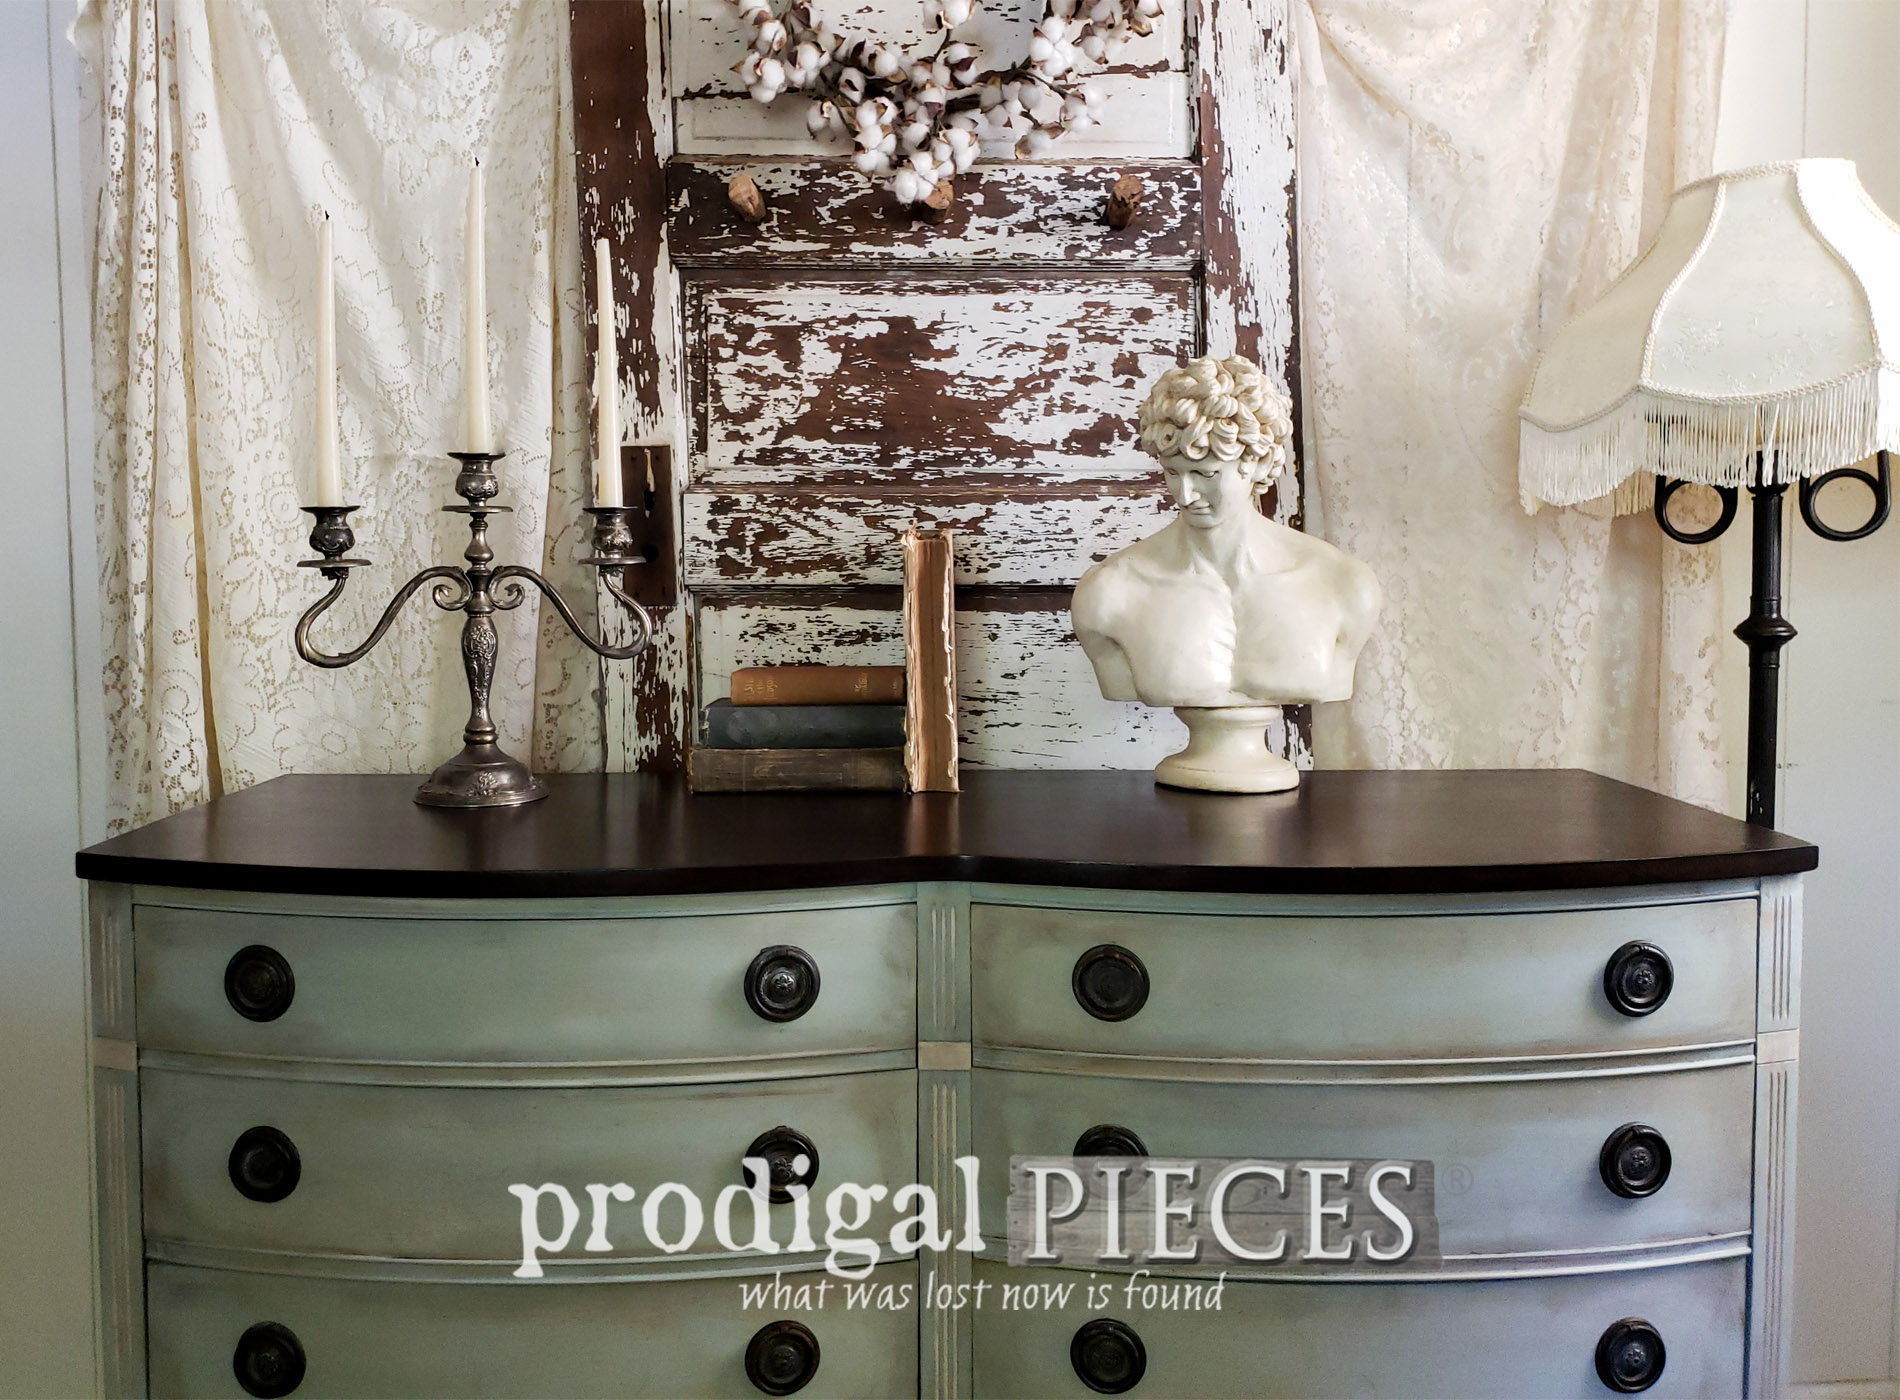 Vintage Dixie Dresser Gets Frottage Makeover Giving it Style and Texture | by Prodigal Pieces | prodigalpieces.com